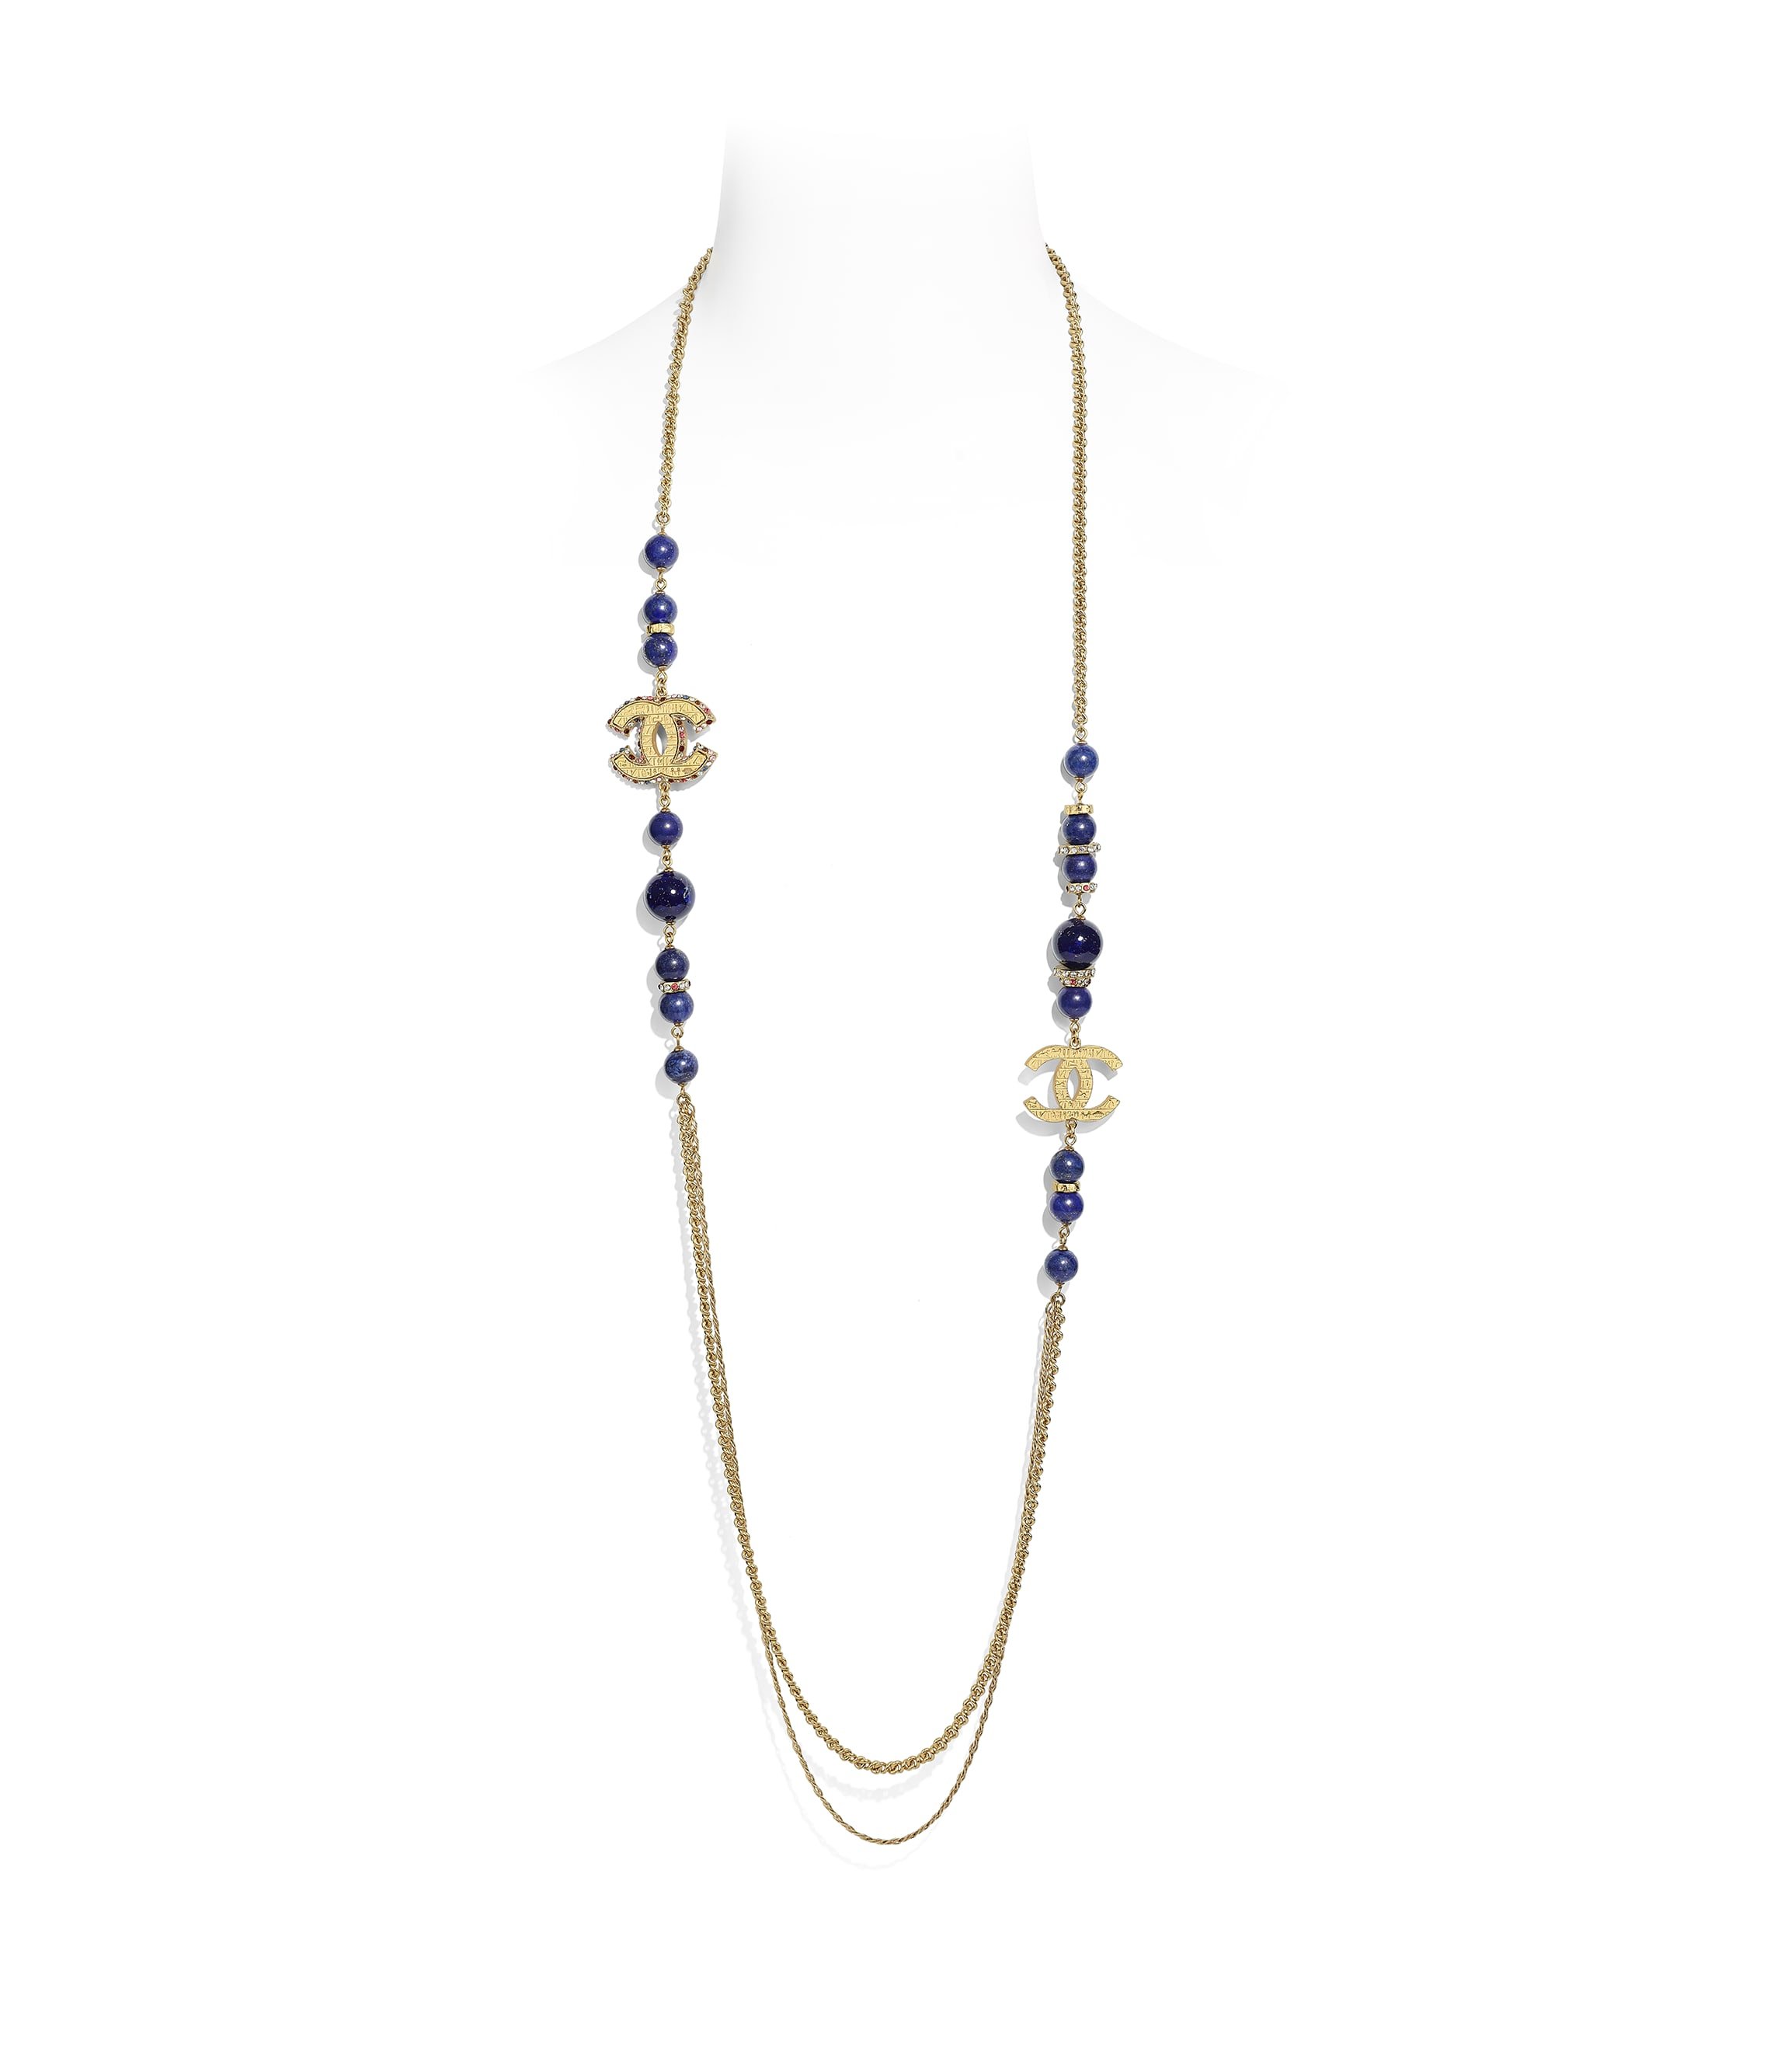 f3ff61ccc2c9a2 Necklaces - Costume Jewelry - CHANEL